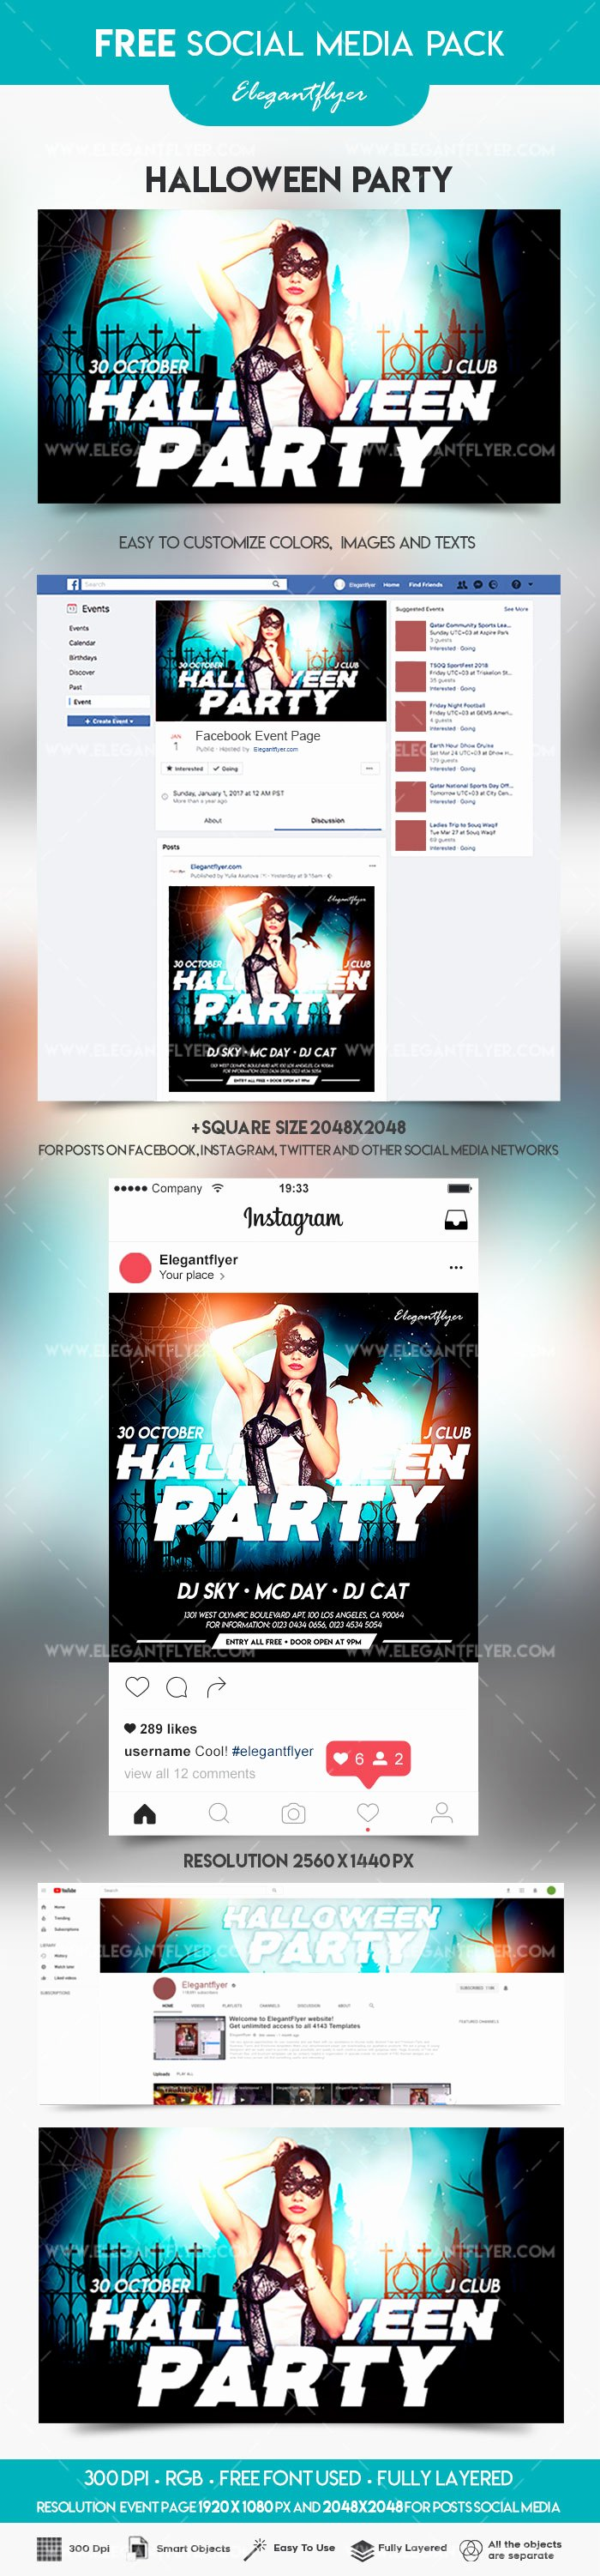 Facebook event Photo Template Luxury Halloween Party – event Instagram Template – by